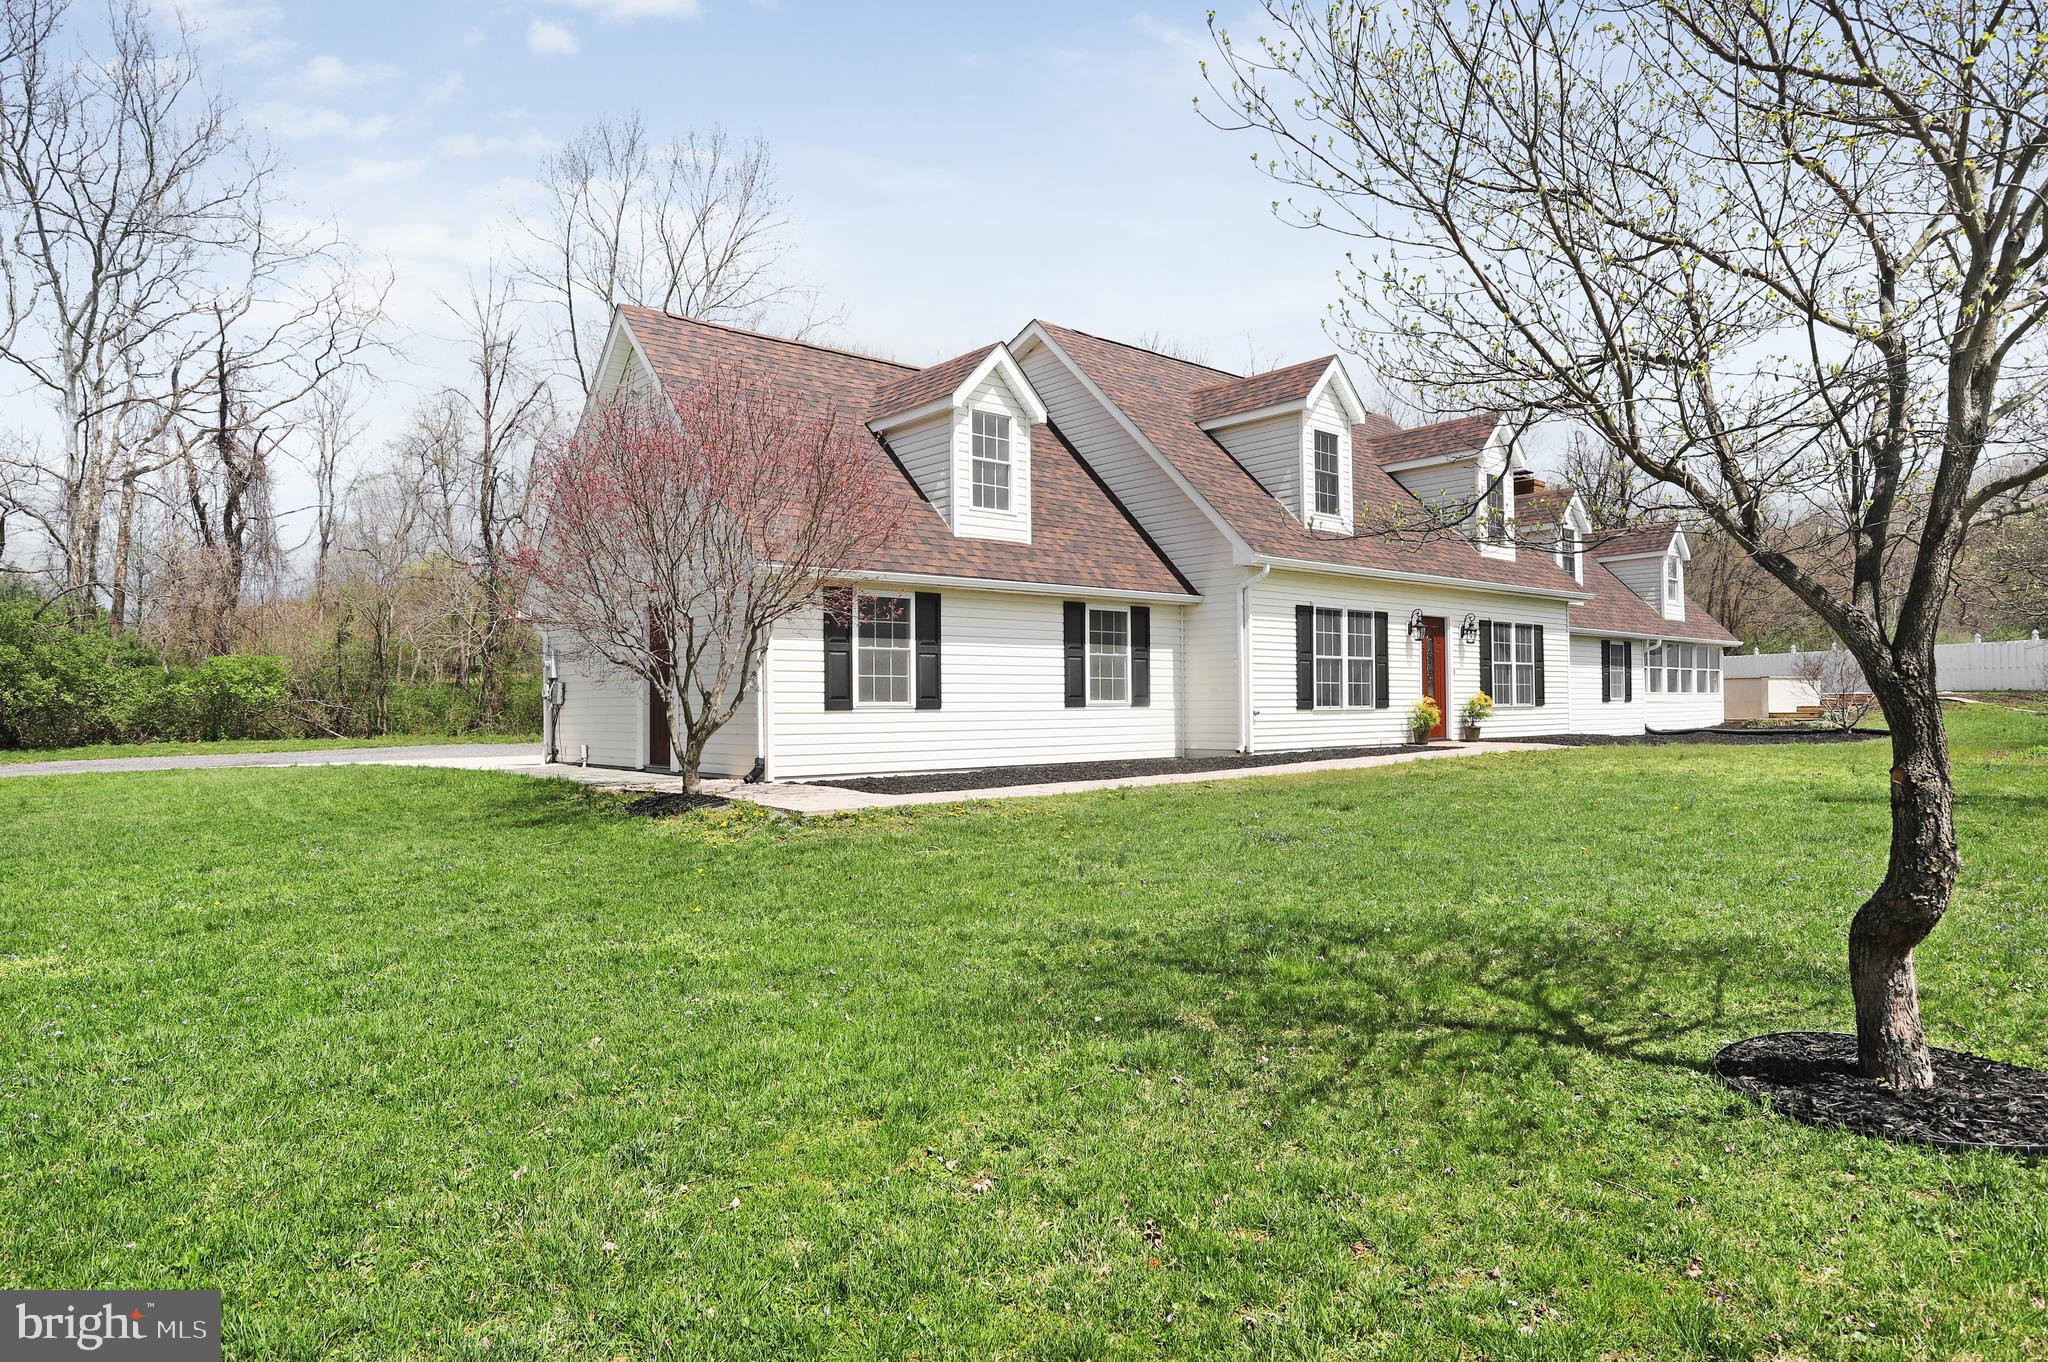 12237 INDIAN SPRINGS ROAD, CLEAR SPRING, MD 21722